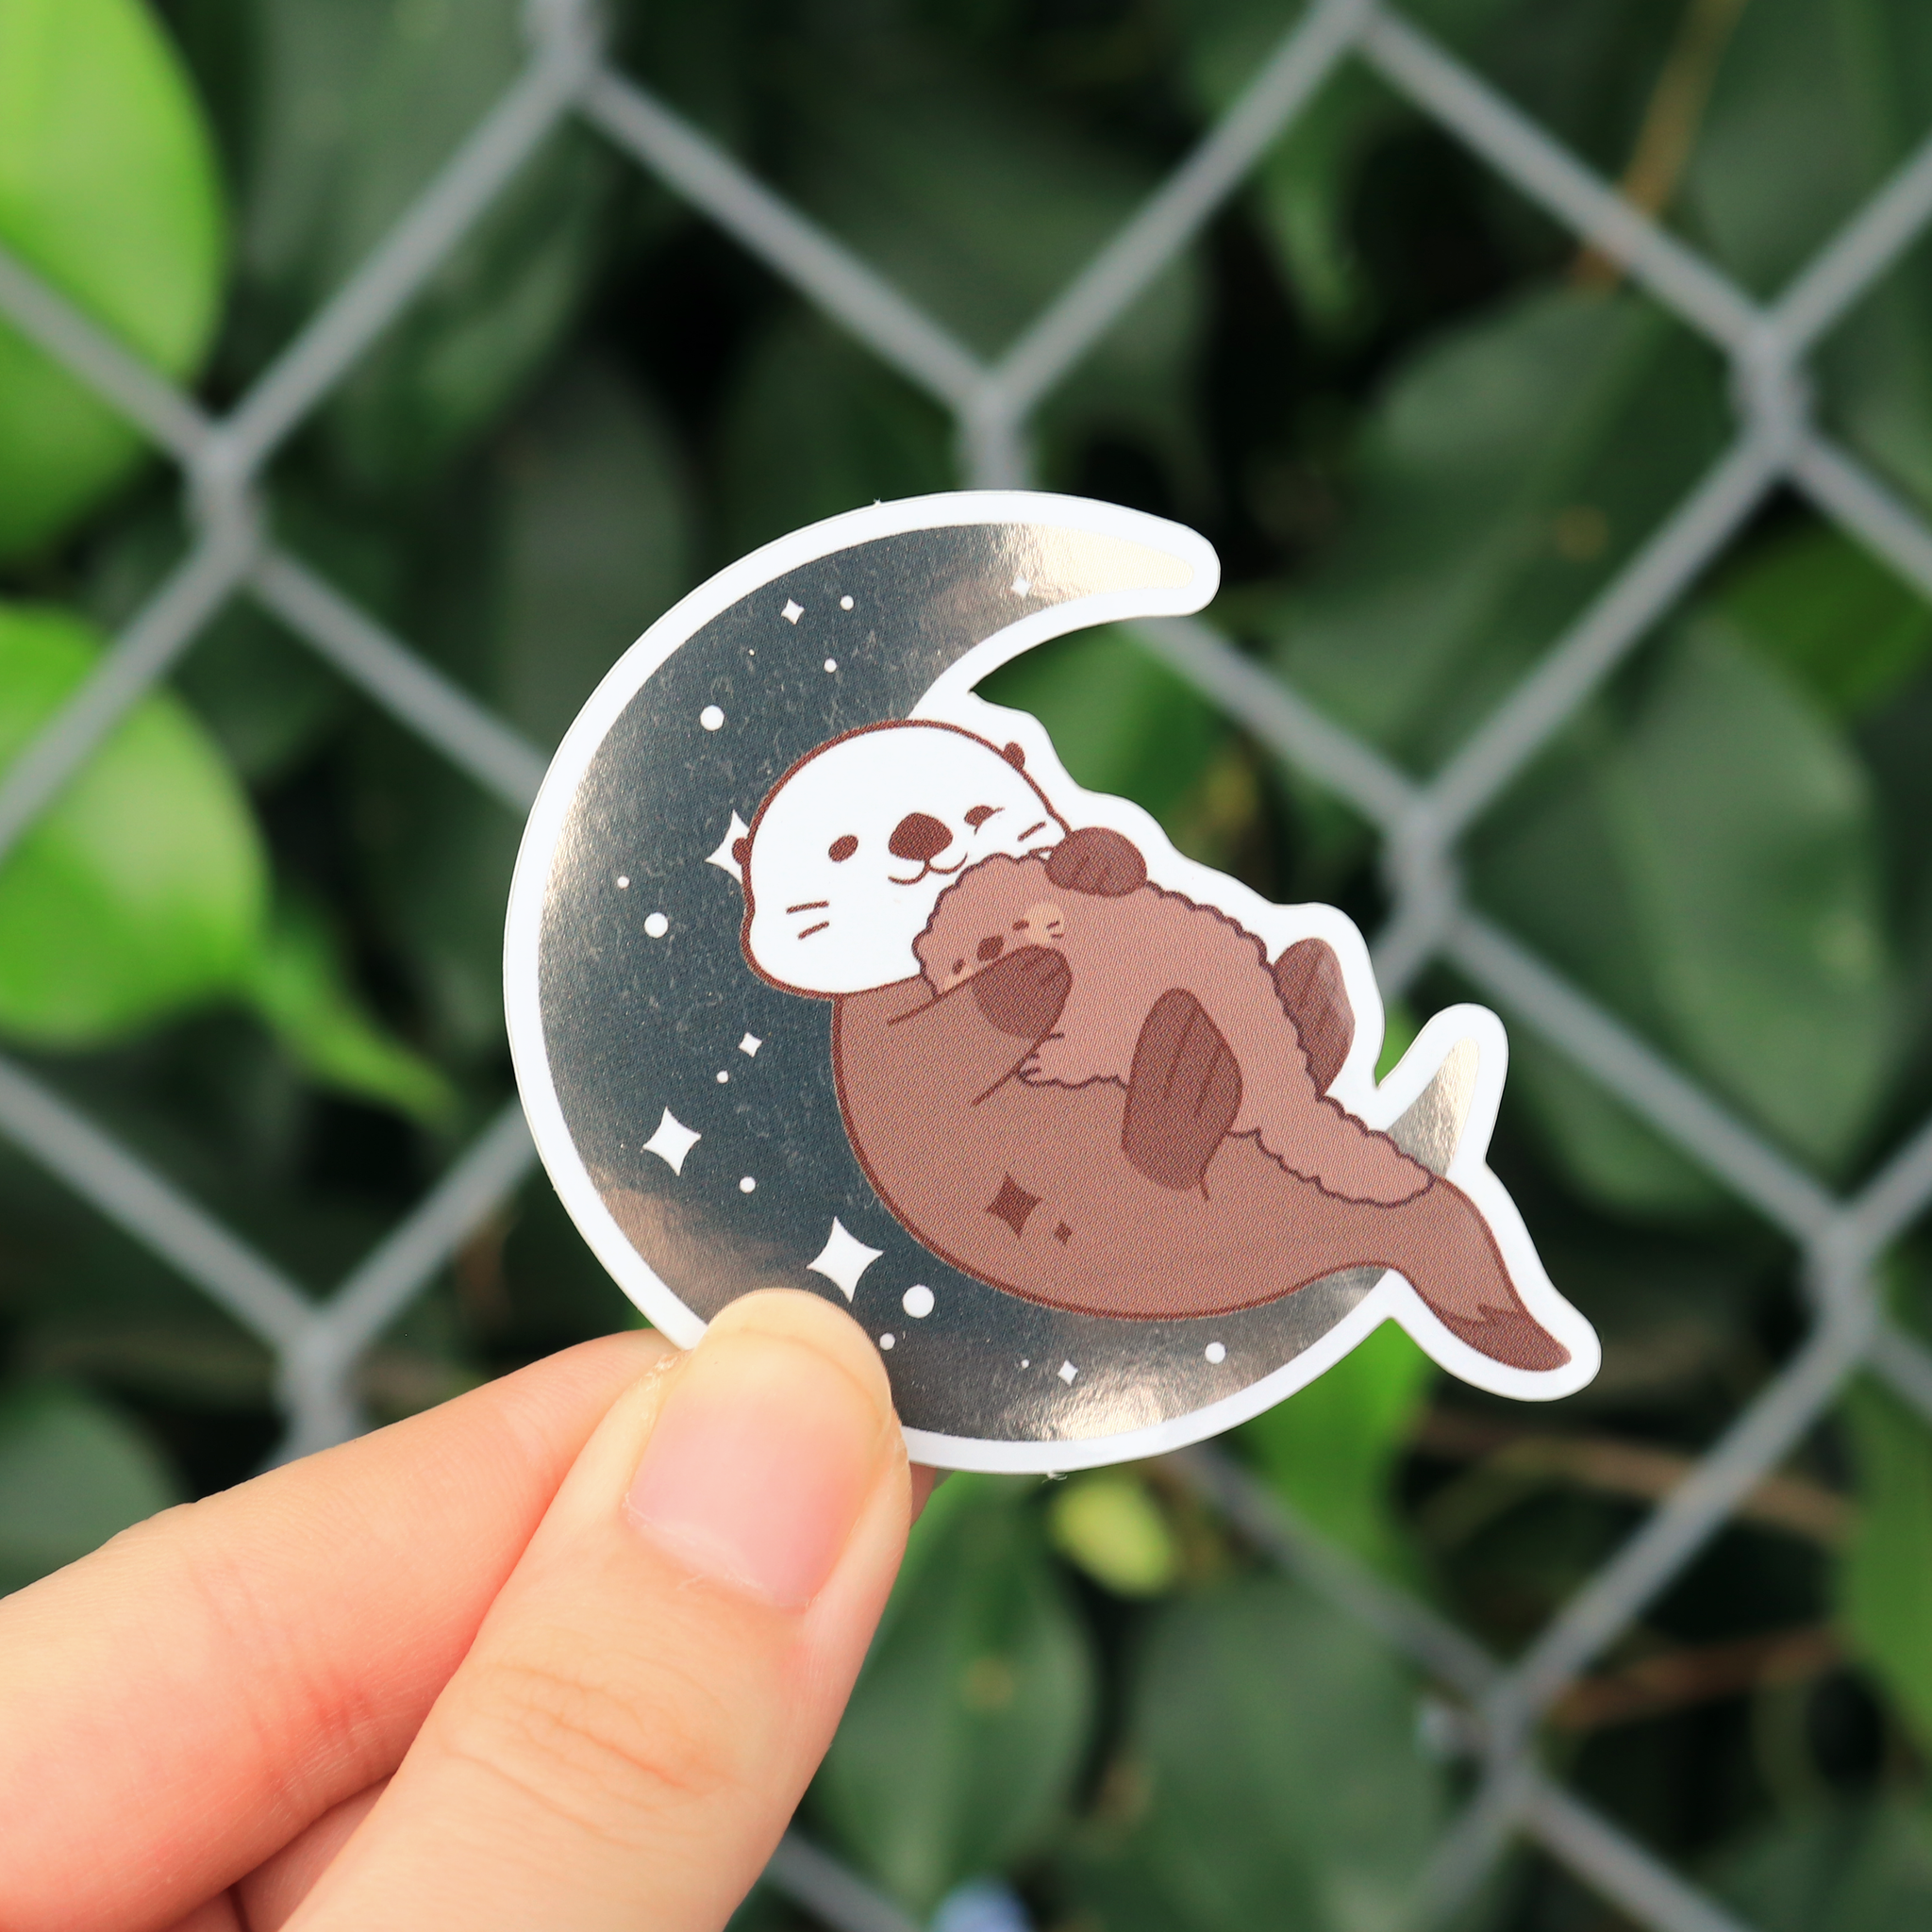 VanAqua Charity Sticker